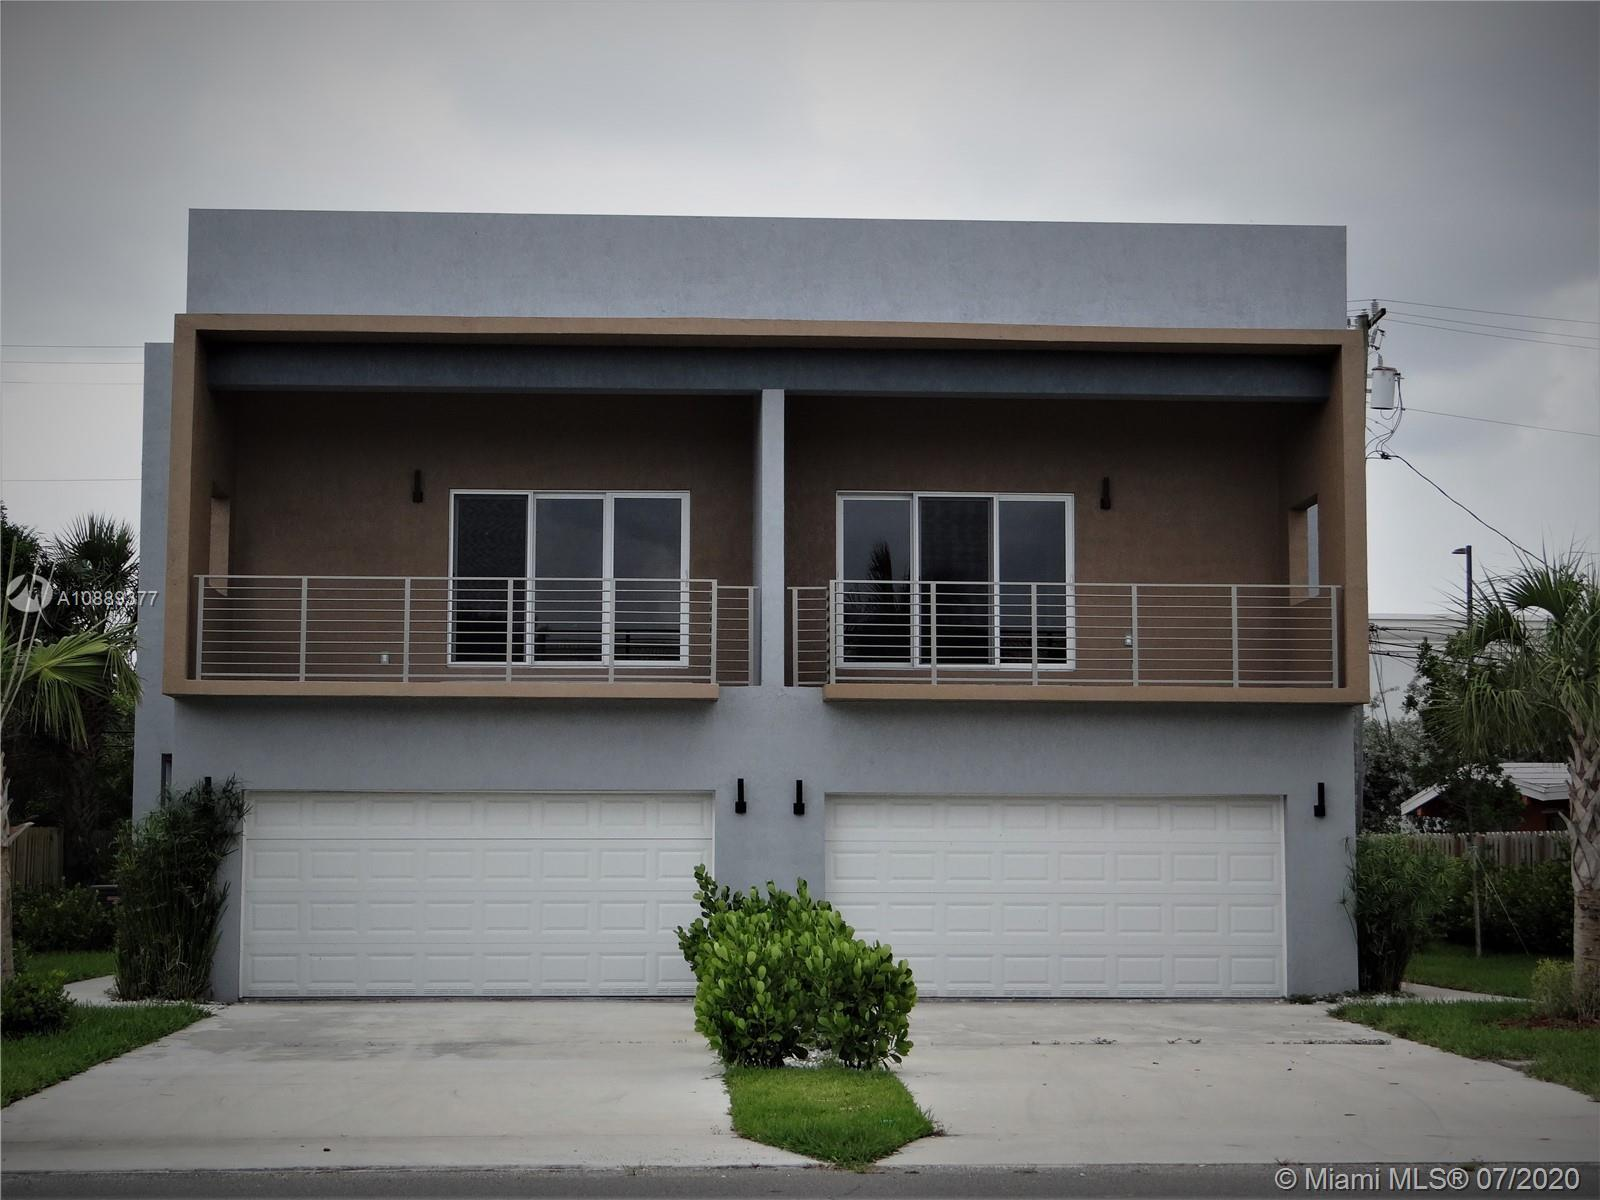 YOU WON'T SEE THIS AGAIN! Extremely well-located brand-new property in Pompano Beach.  This amazing